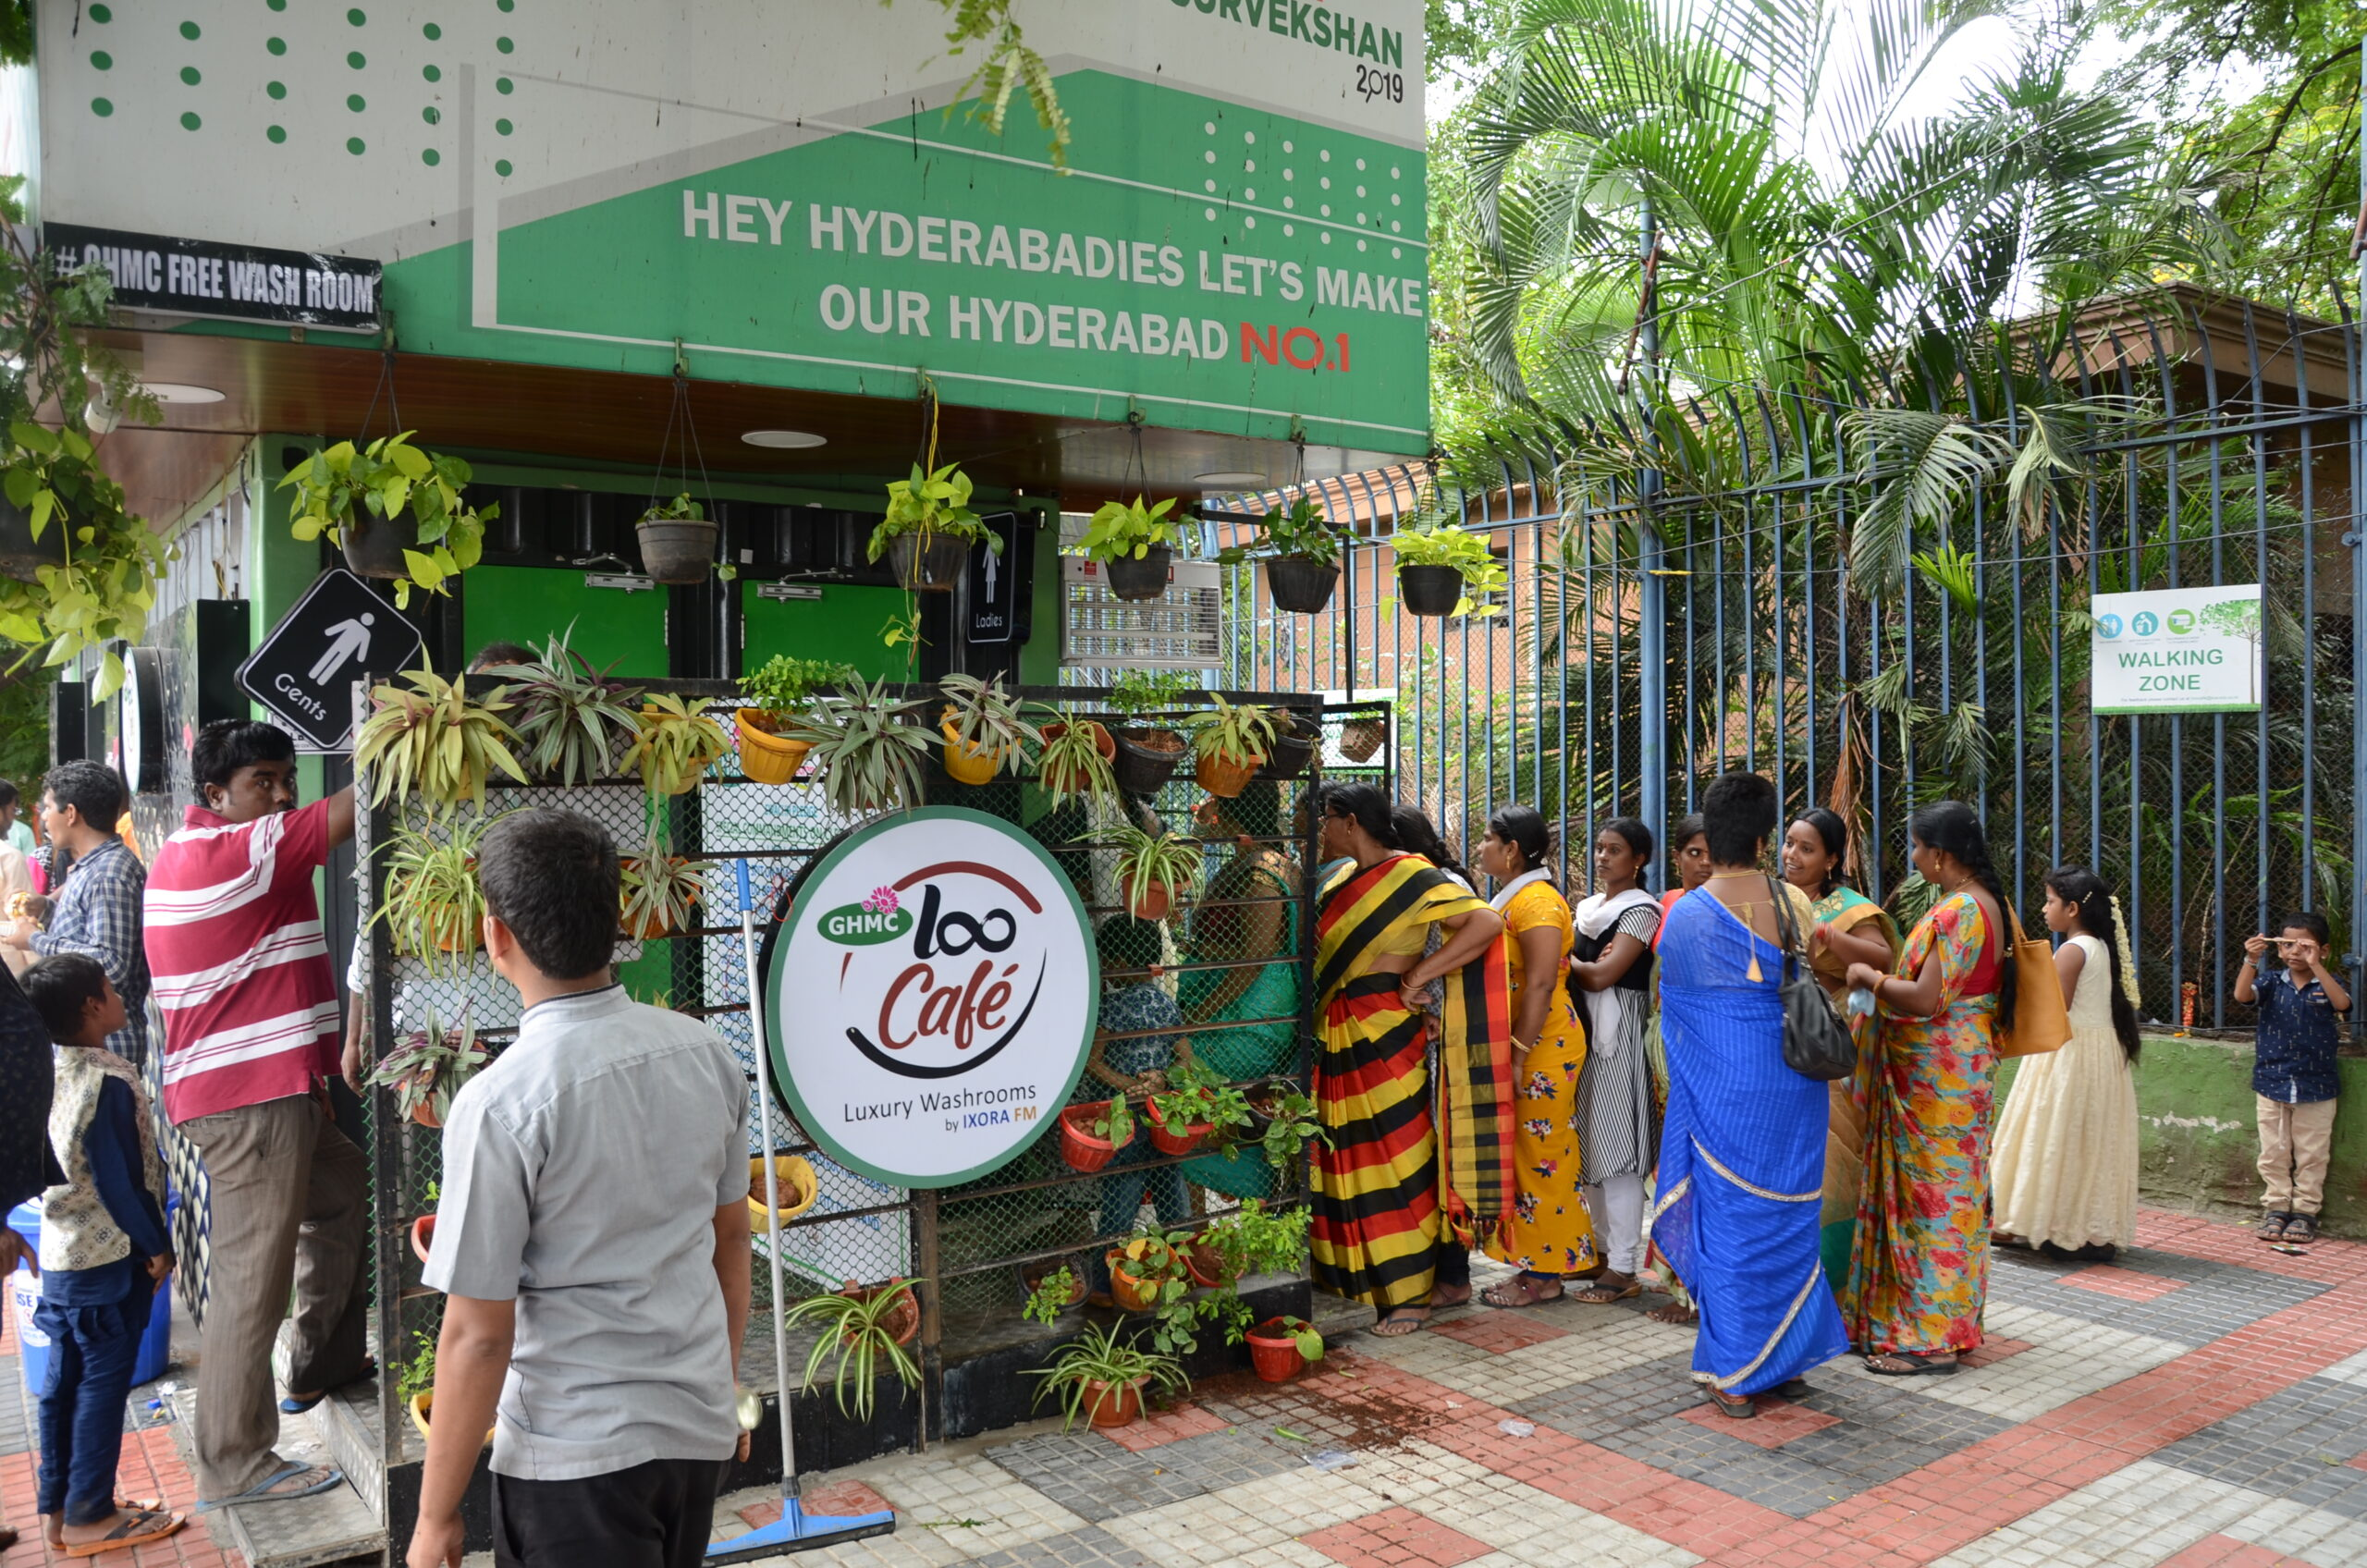 GHMC Loocafé breaks records with over 10k people using washrooms